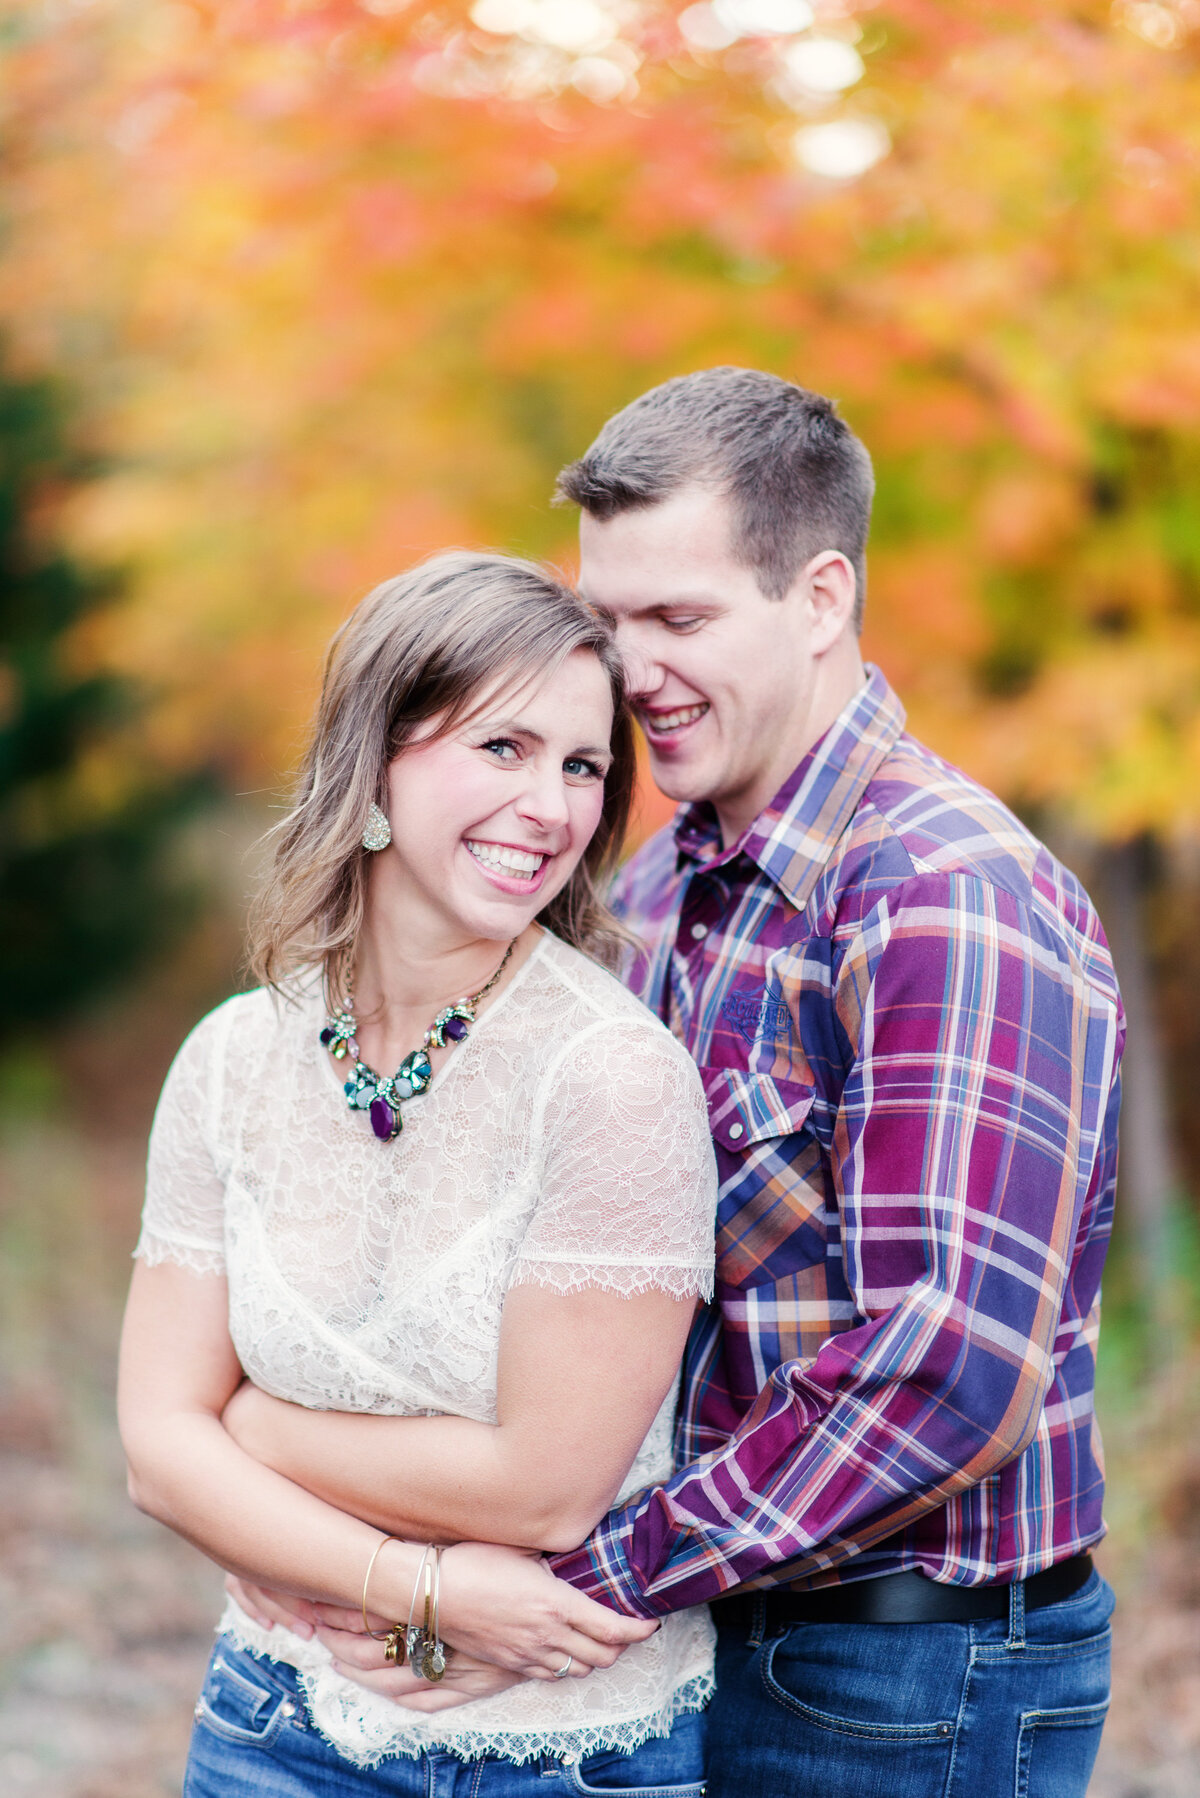 traverse-city-michigan-engagement-wedding-photography-8